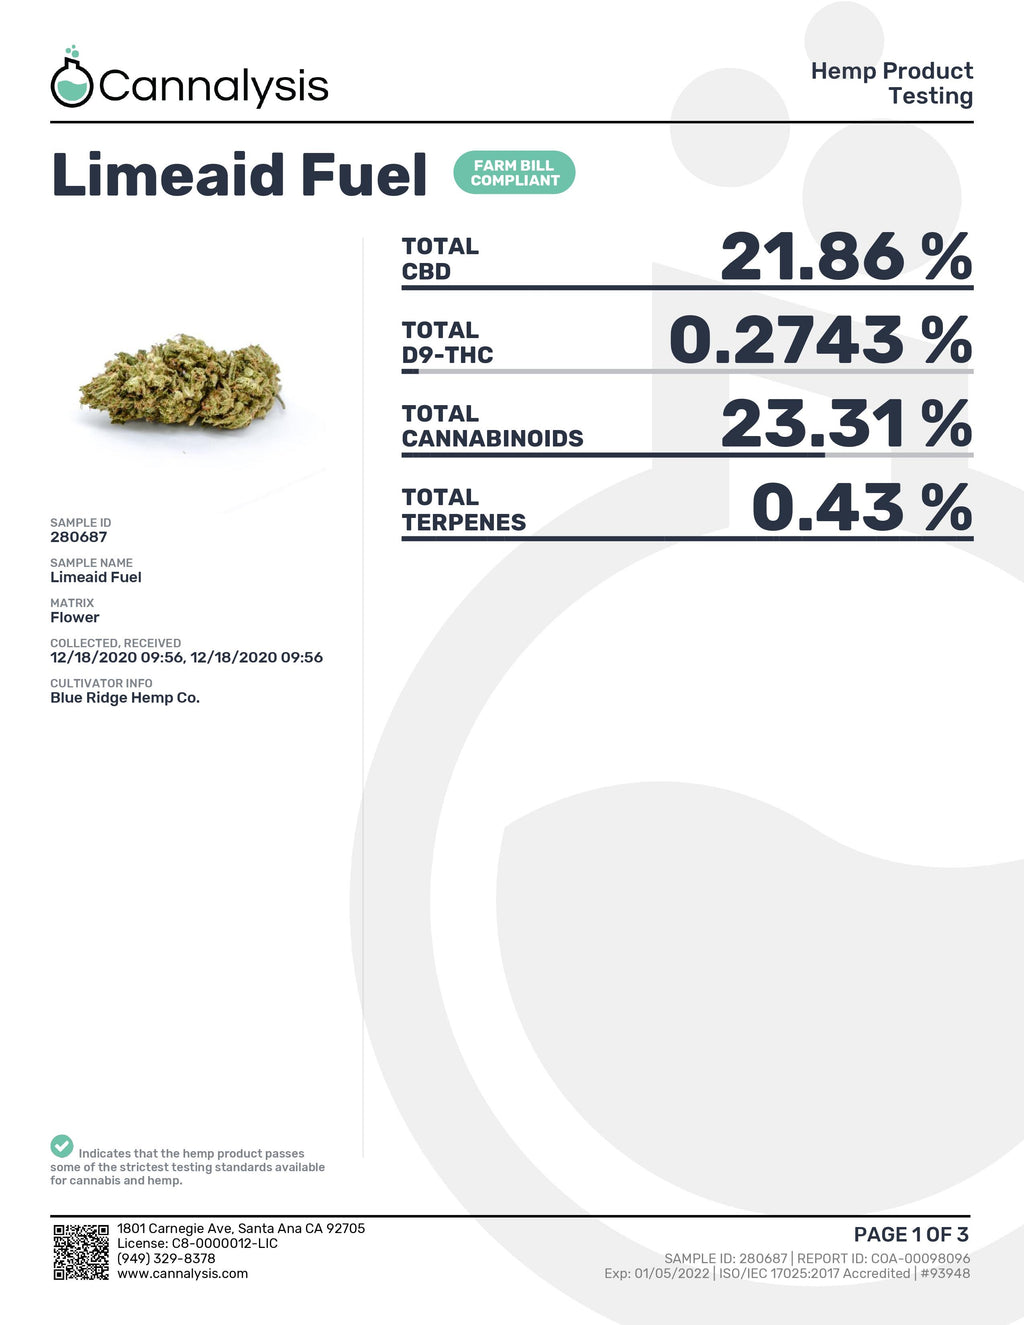 Limeaid Fuel Strain Hemp Blue Js Prerolls (New)